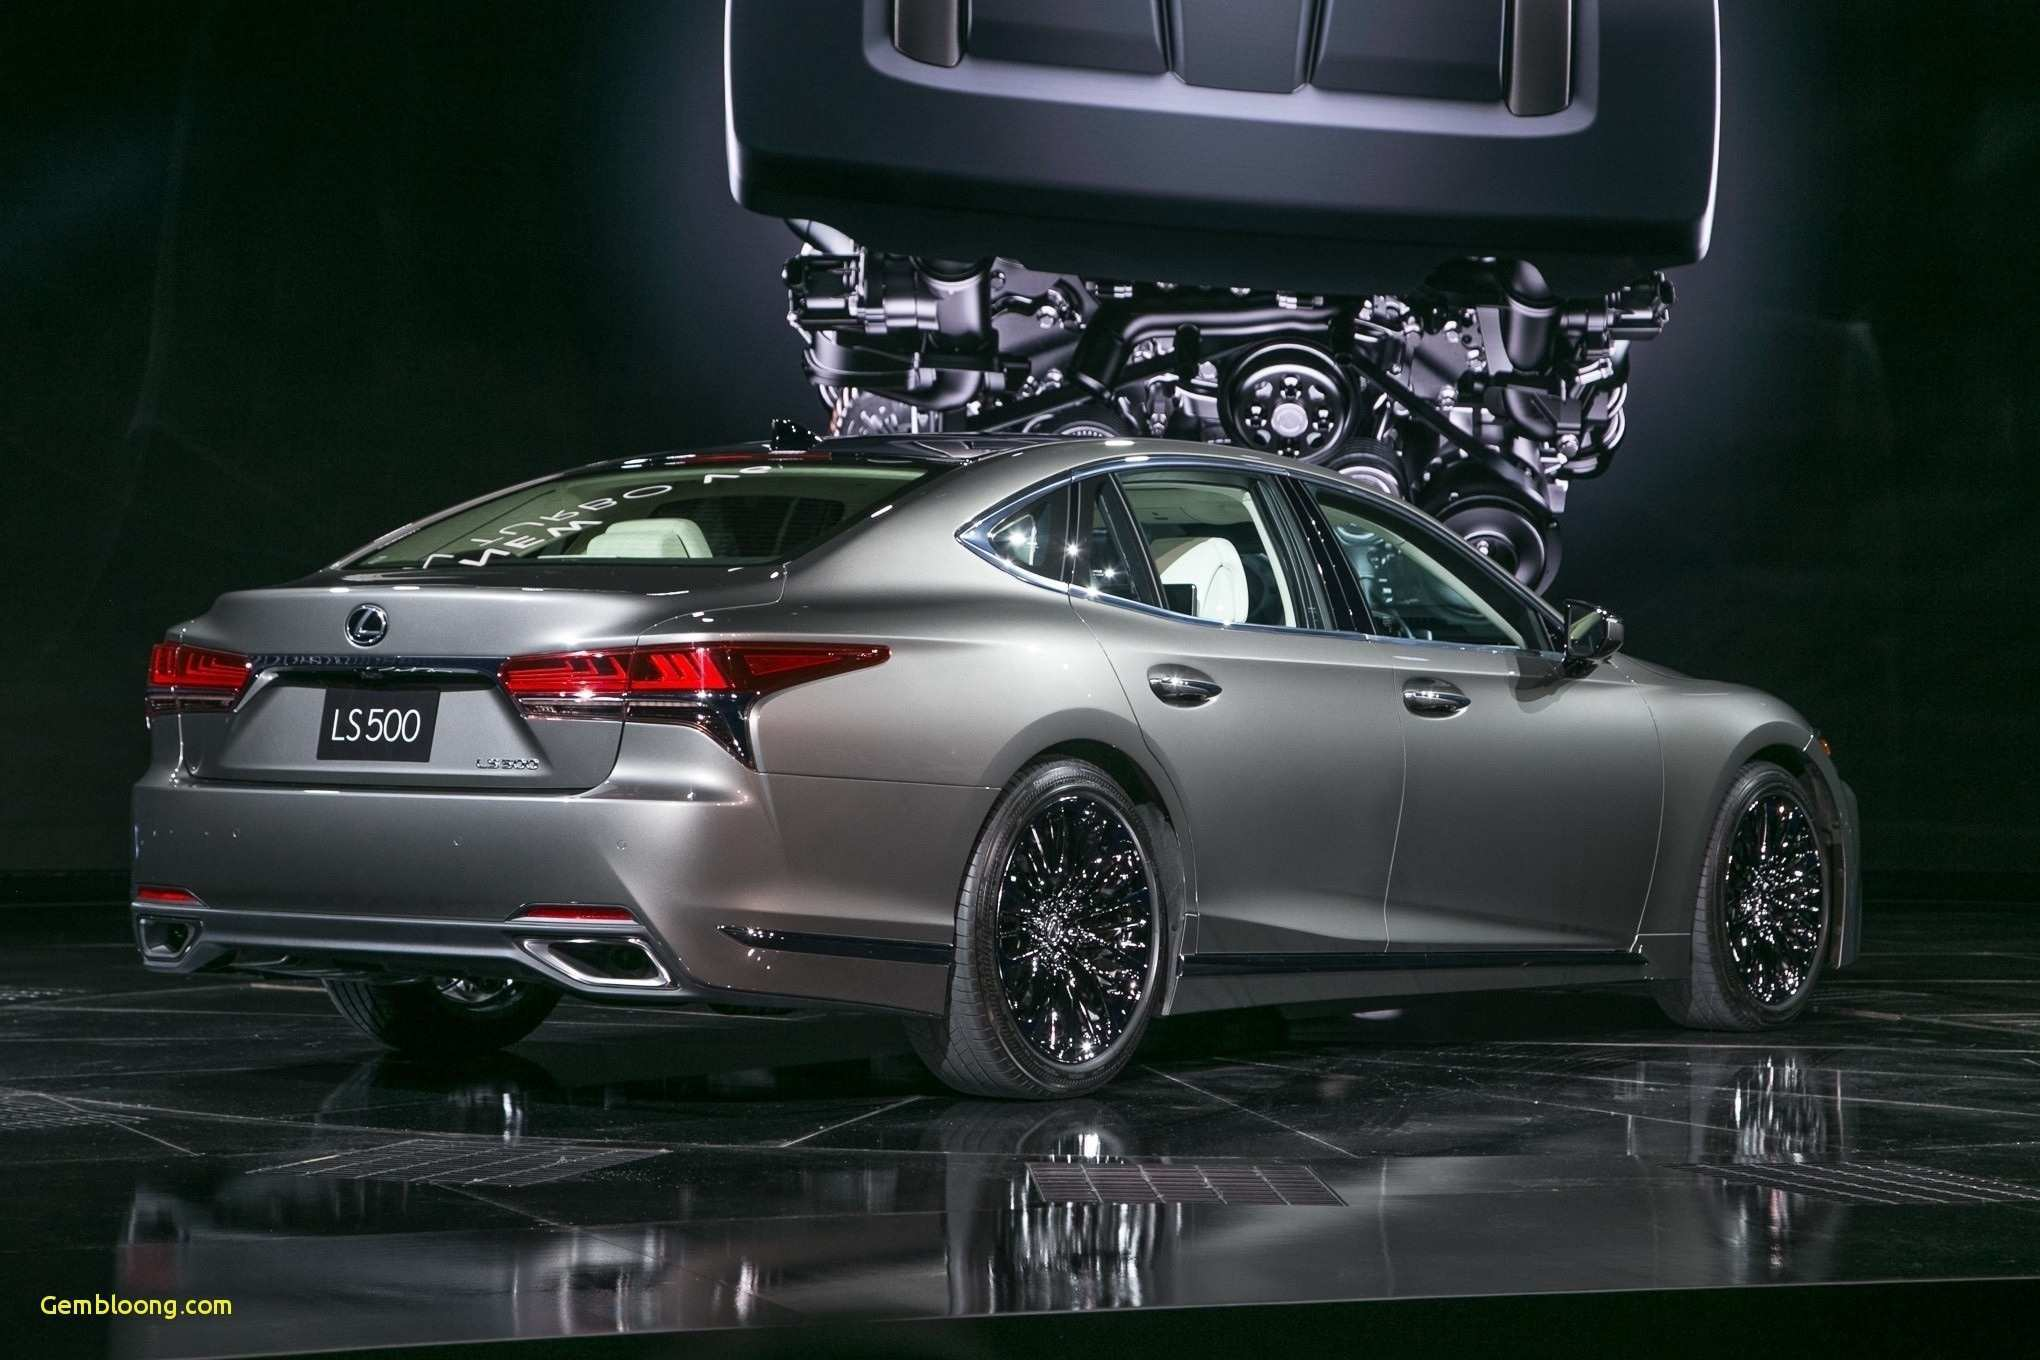 53 The 2020 Lexus LS Exterior And Interior